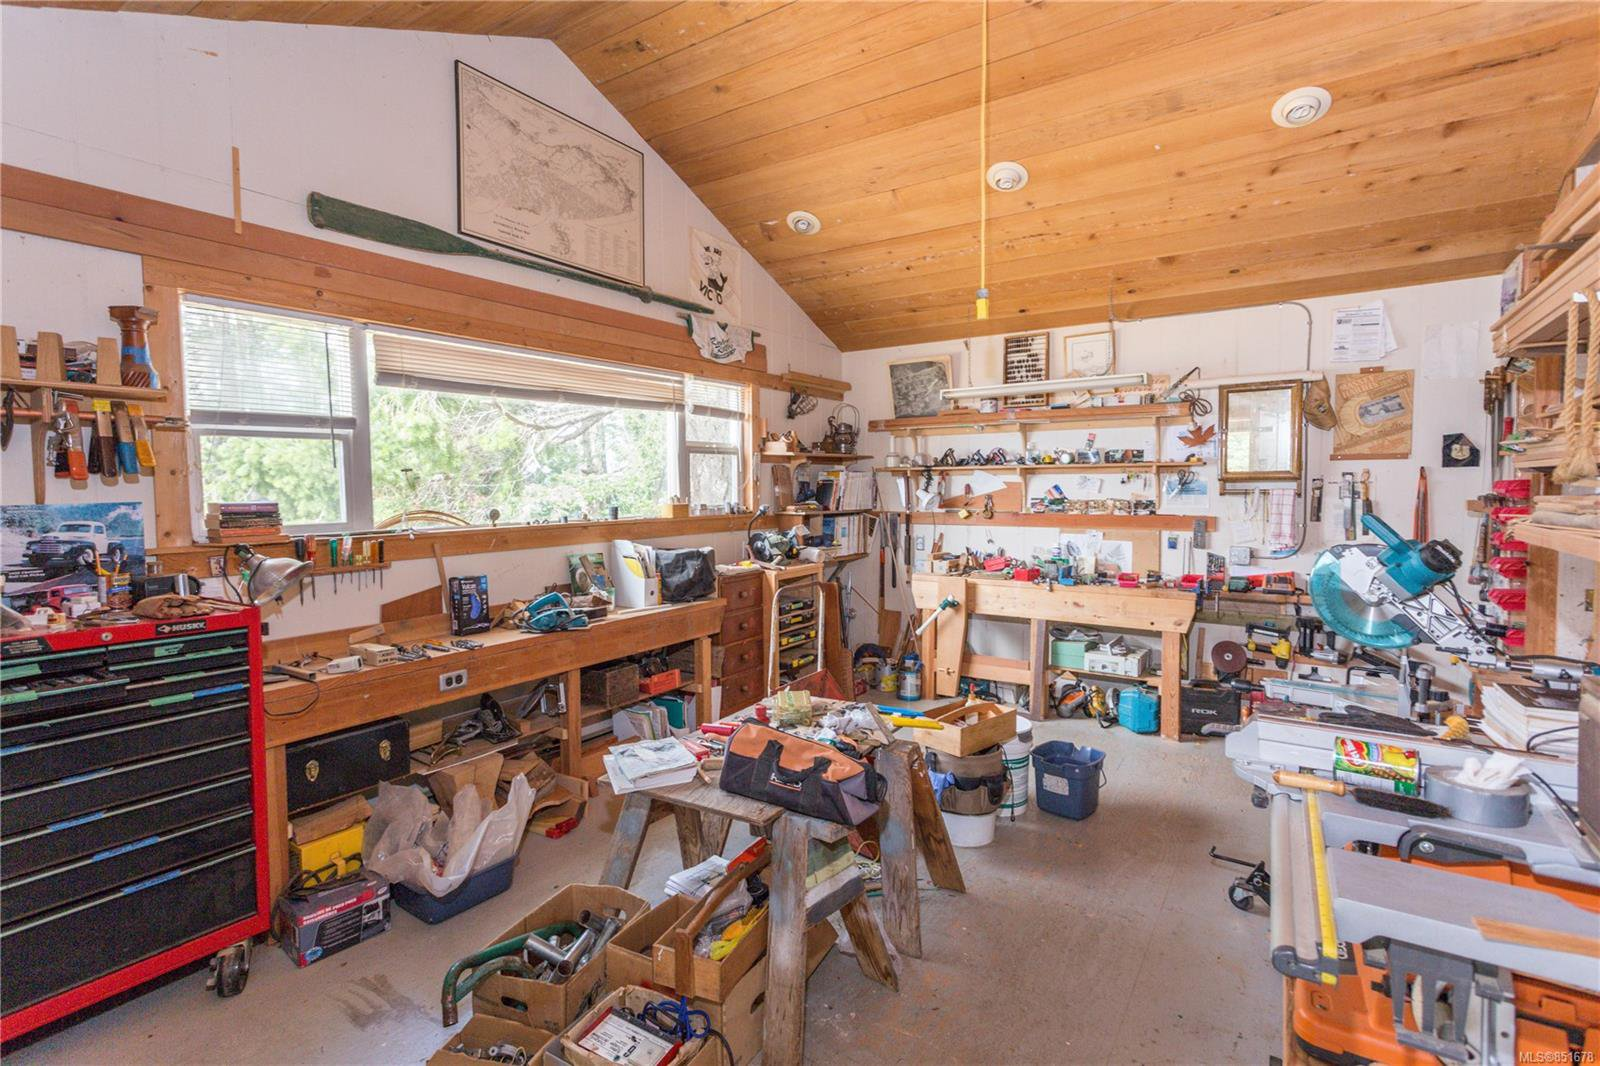 Photo 27: Photos: 262 Forbes Dr in : Isl Thetis Island House for sale (Islands)  : MLS®# 851678